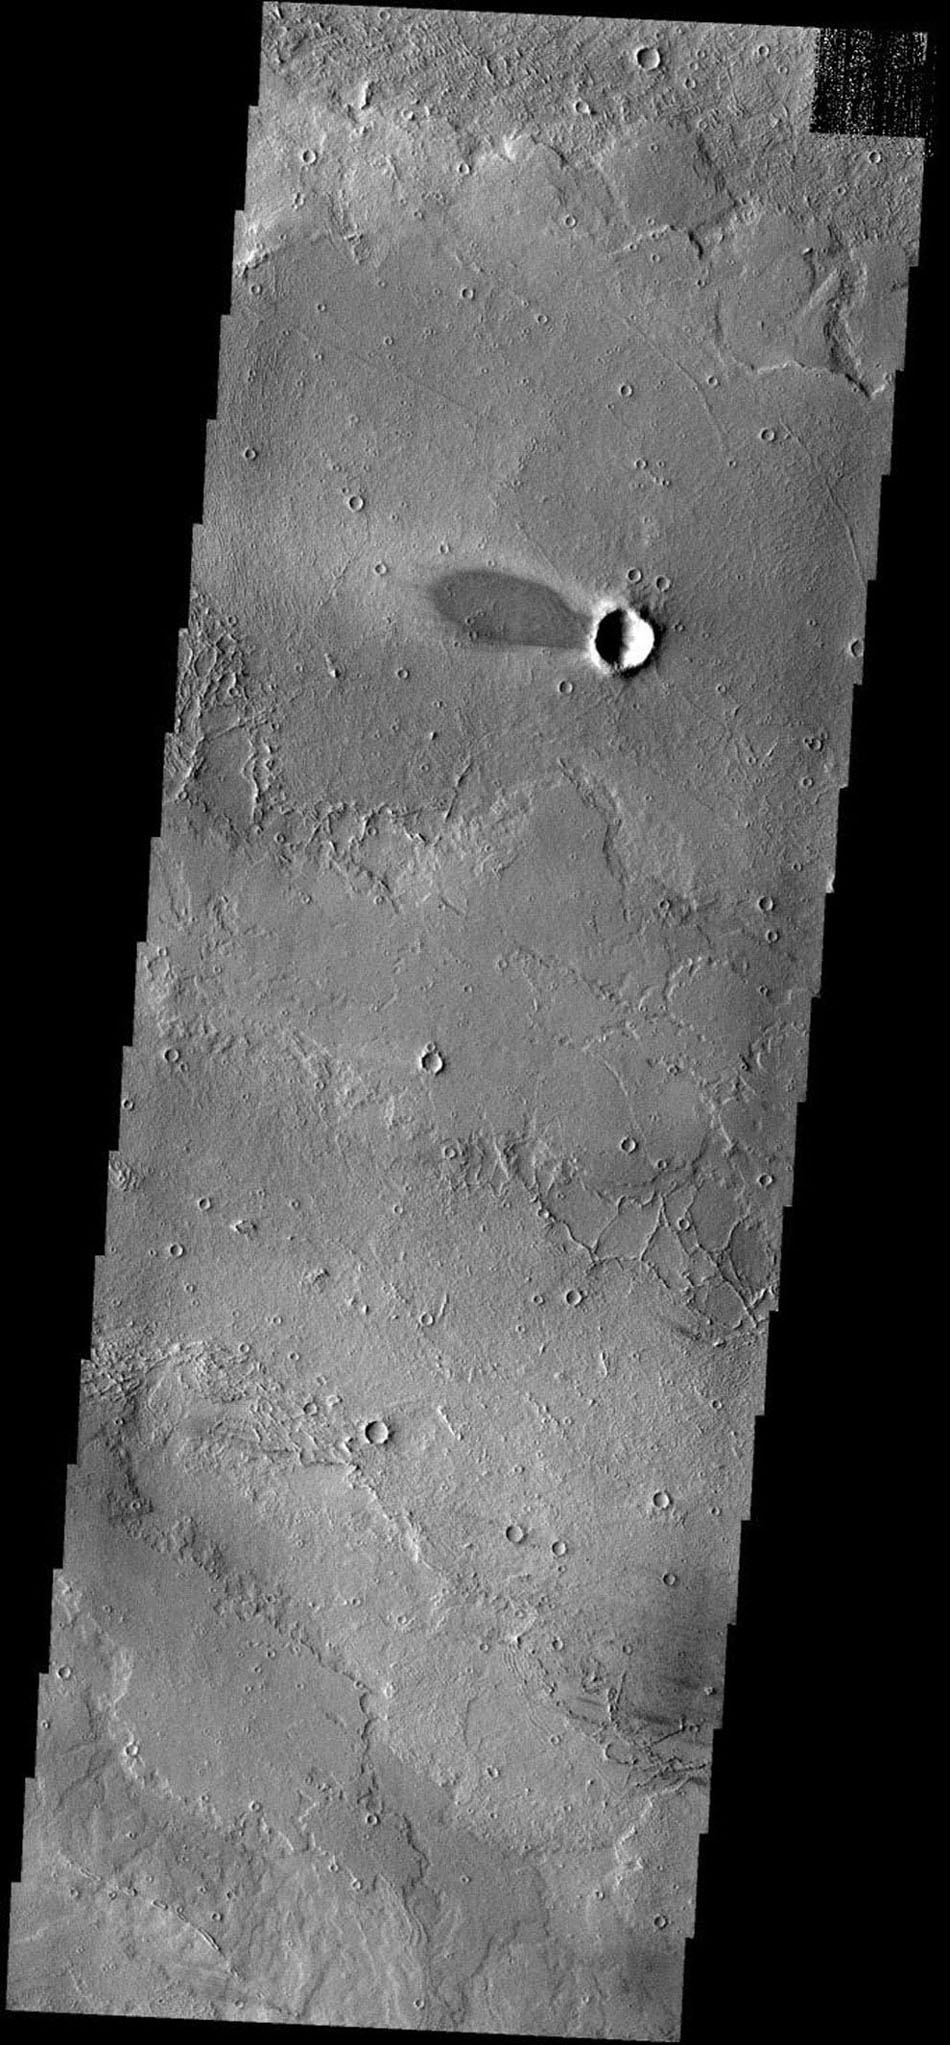 This windstreak is located on lava flows west of Arsia Mons on Mars as seen by NASA's 2001 Mars Odyssey spacecraft.